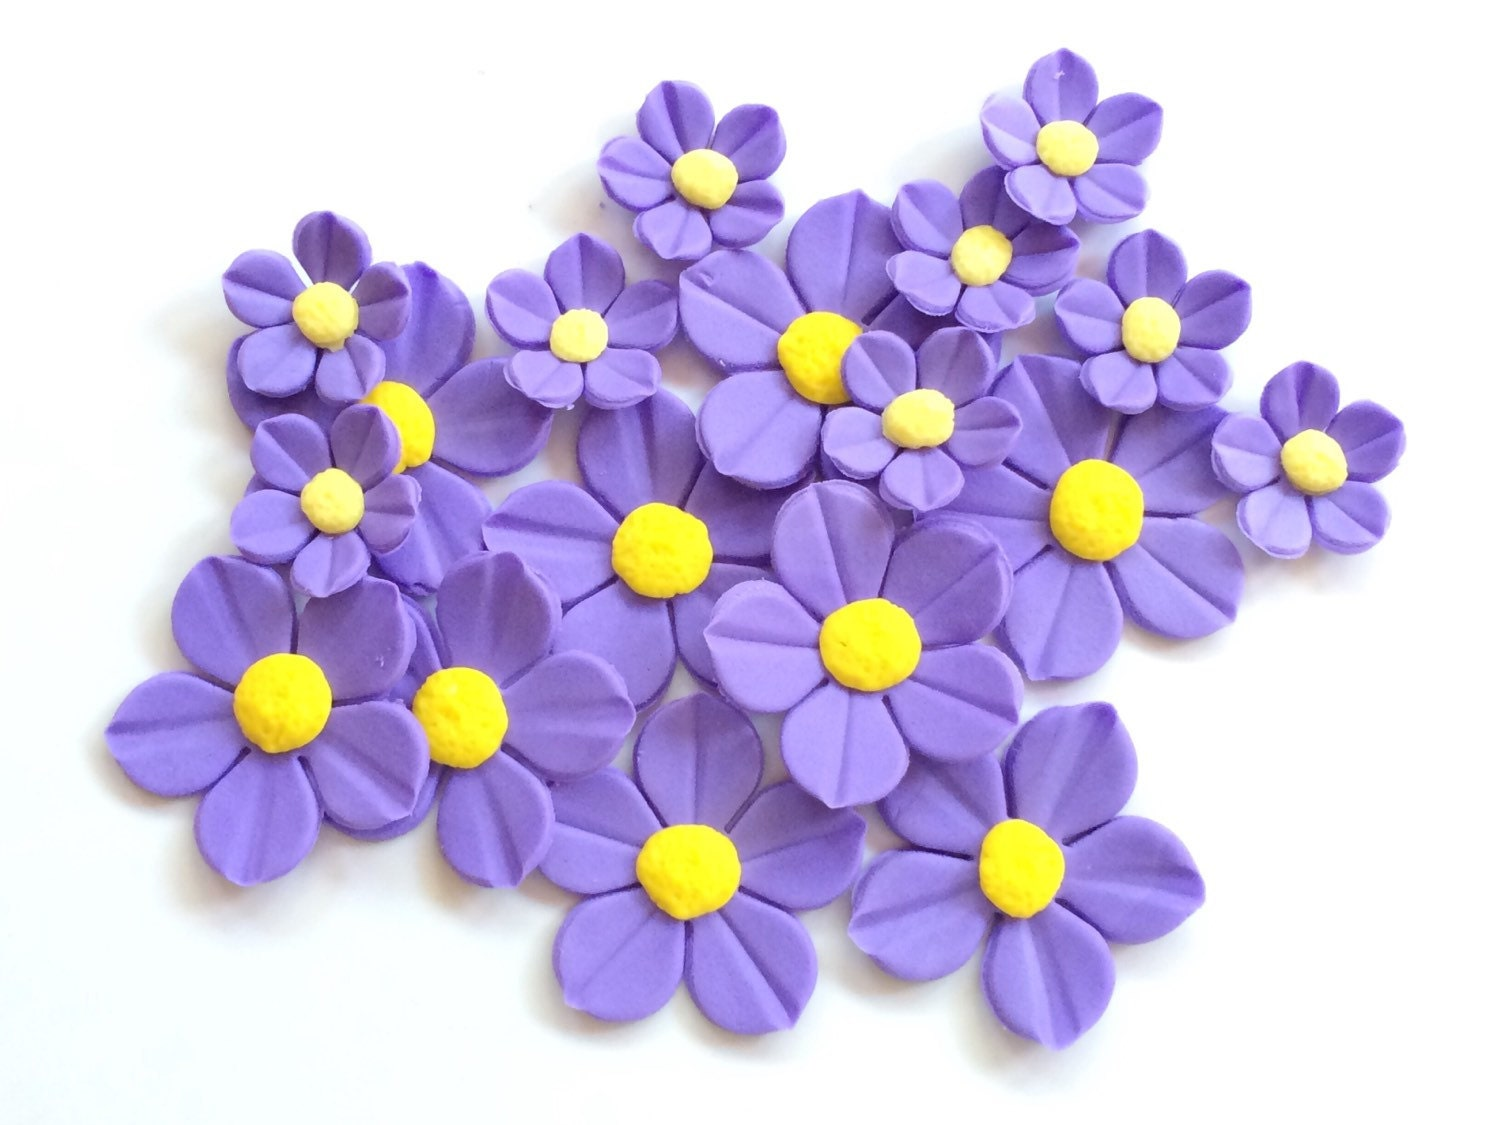 24 lavender edible flowers cake decorations fondant flowers yellow 24 lavender edible flowers cake decorations fondant flowers yellow edible cupcake toppers lavender wedding cake flowers mightylinksfo